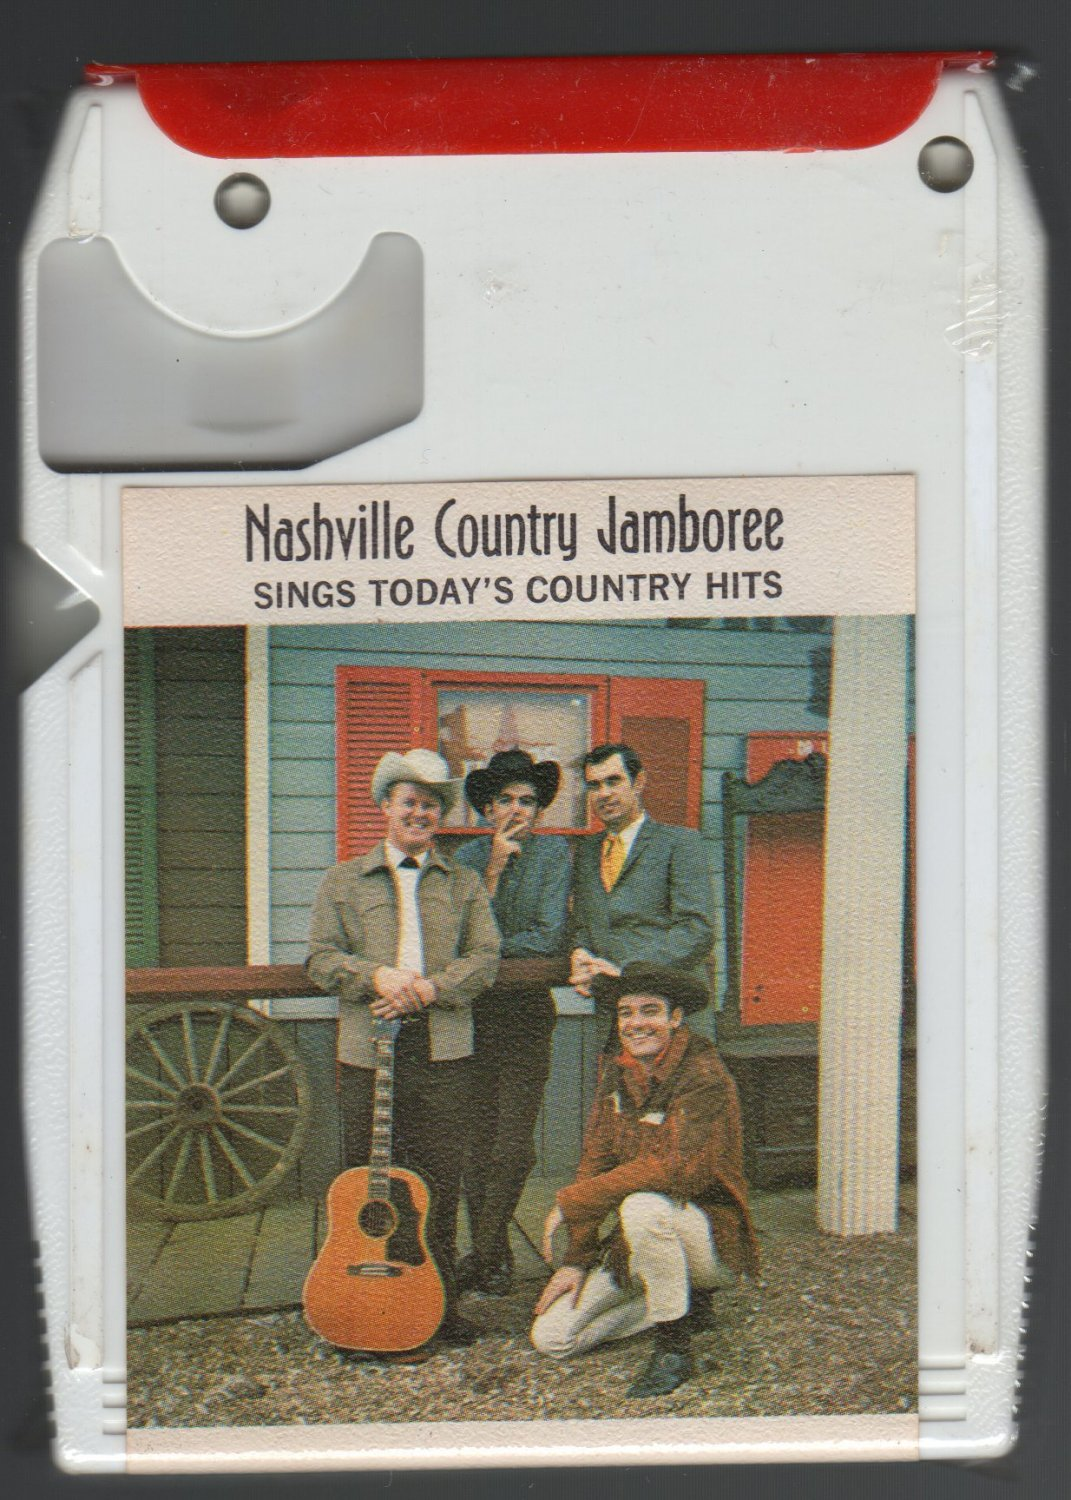 Nashville Country Jamboree - Sings Today's Country Hits SPAR 3012 Sealed A4 8-TRACK TAPE